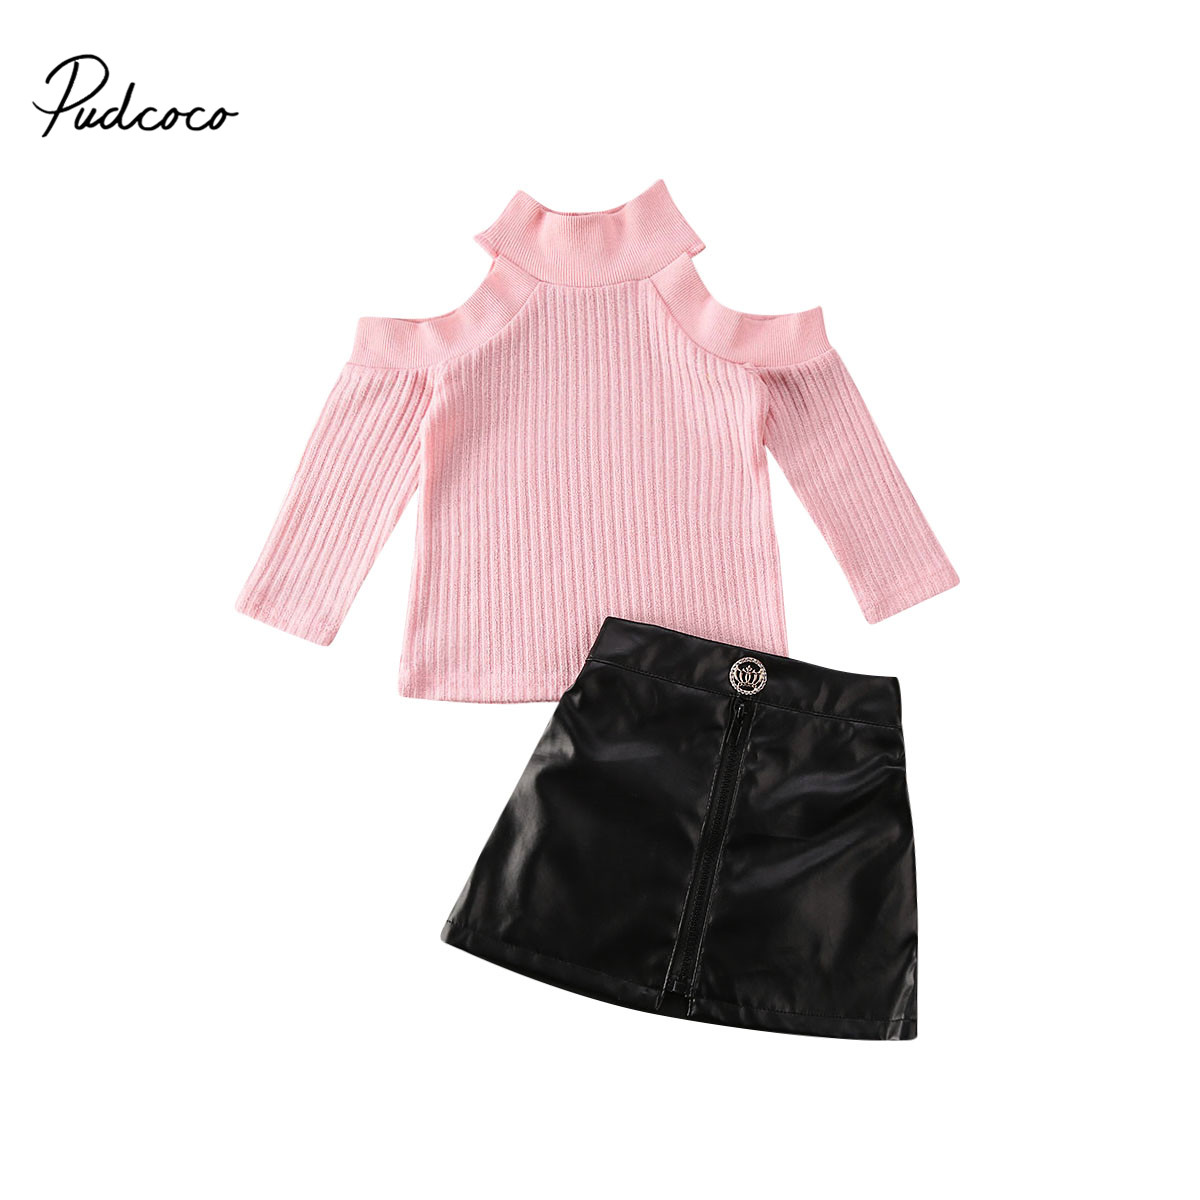 Pudcoco 1-5Y 2020 Fashion Infant Baby Girls Kids Clothes Sets Long Sleeve Knit Off Shoulder Pullover Sweater Tops Skirt Outfit